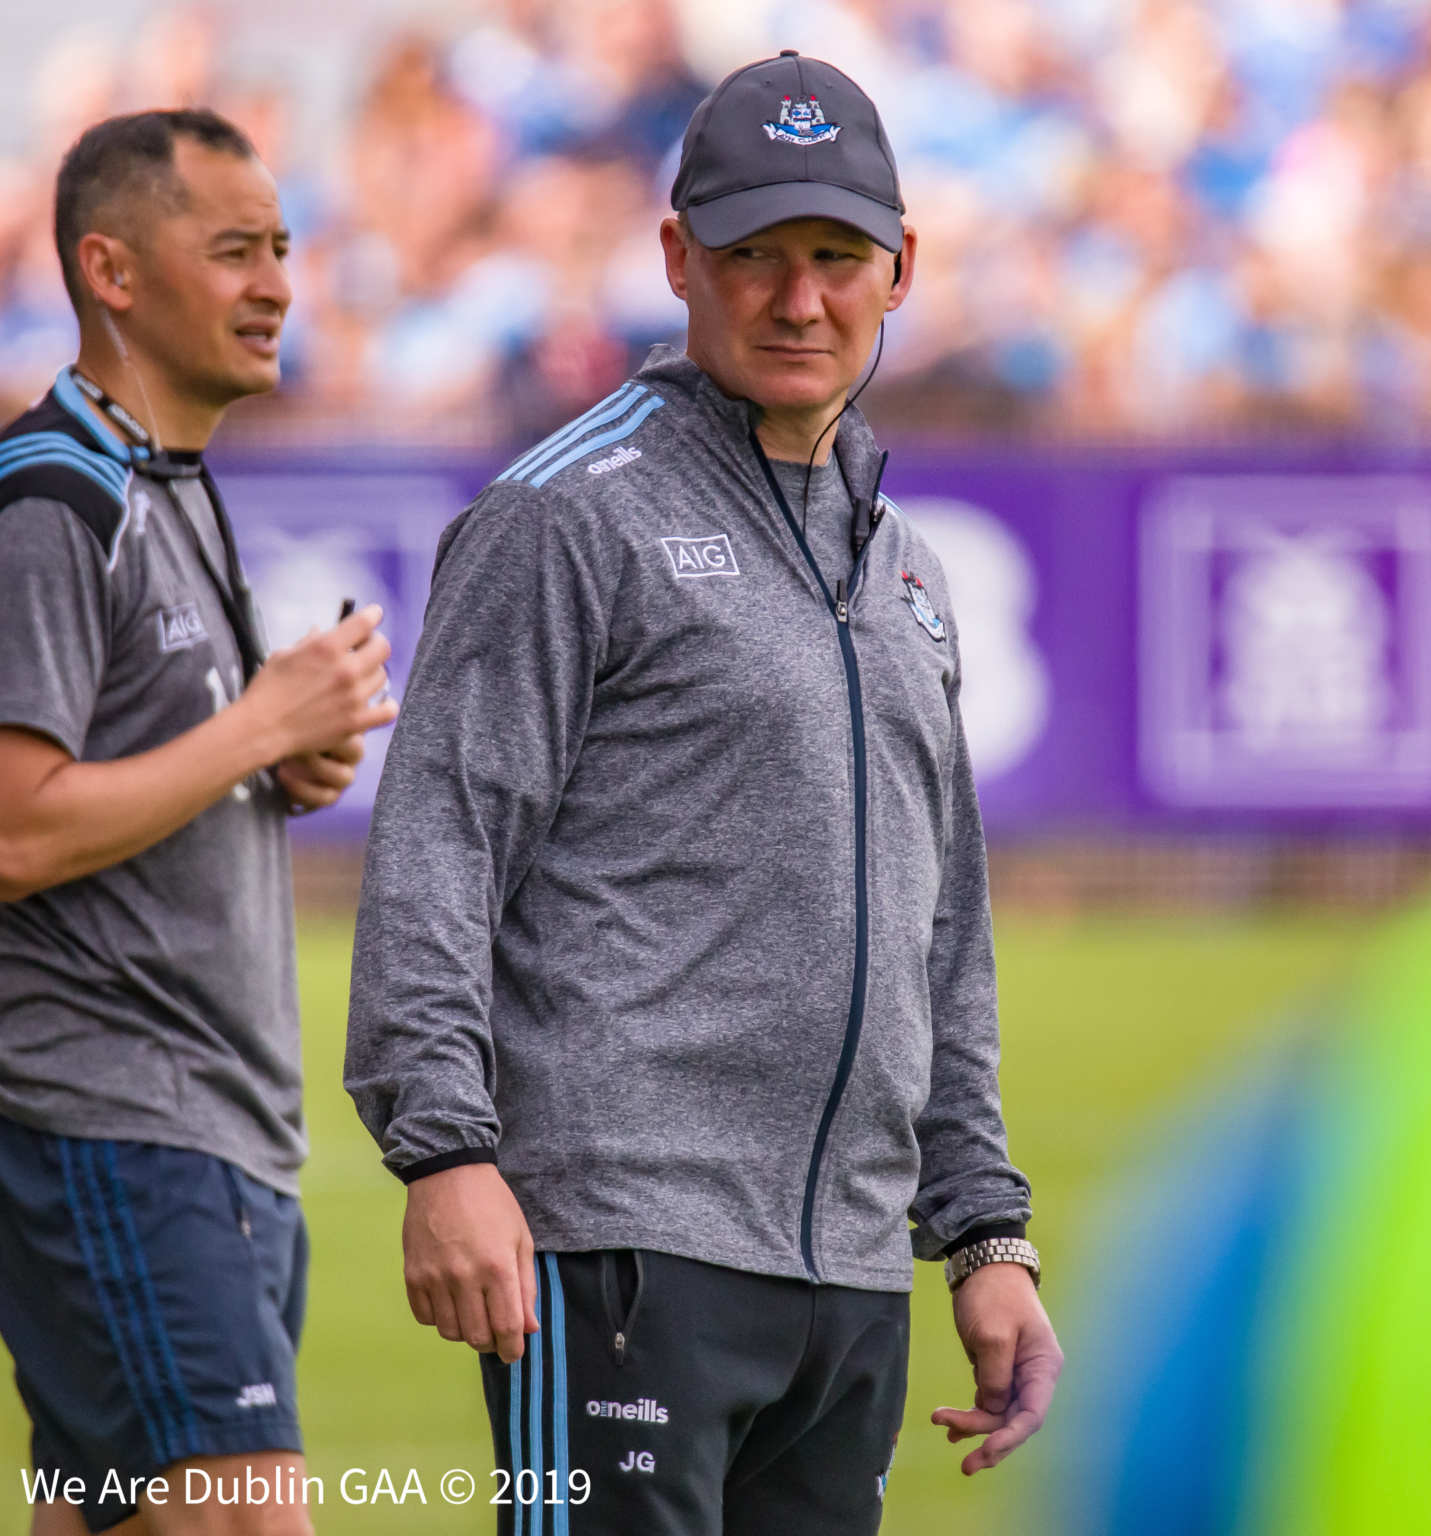 Dublin manager Jim Gavin, amid speculation on his future Jack McCaffrey insist Gavin hasn't indicated to the players that he won't be around next season